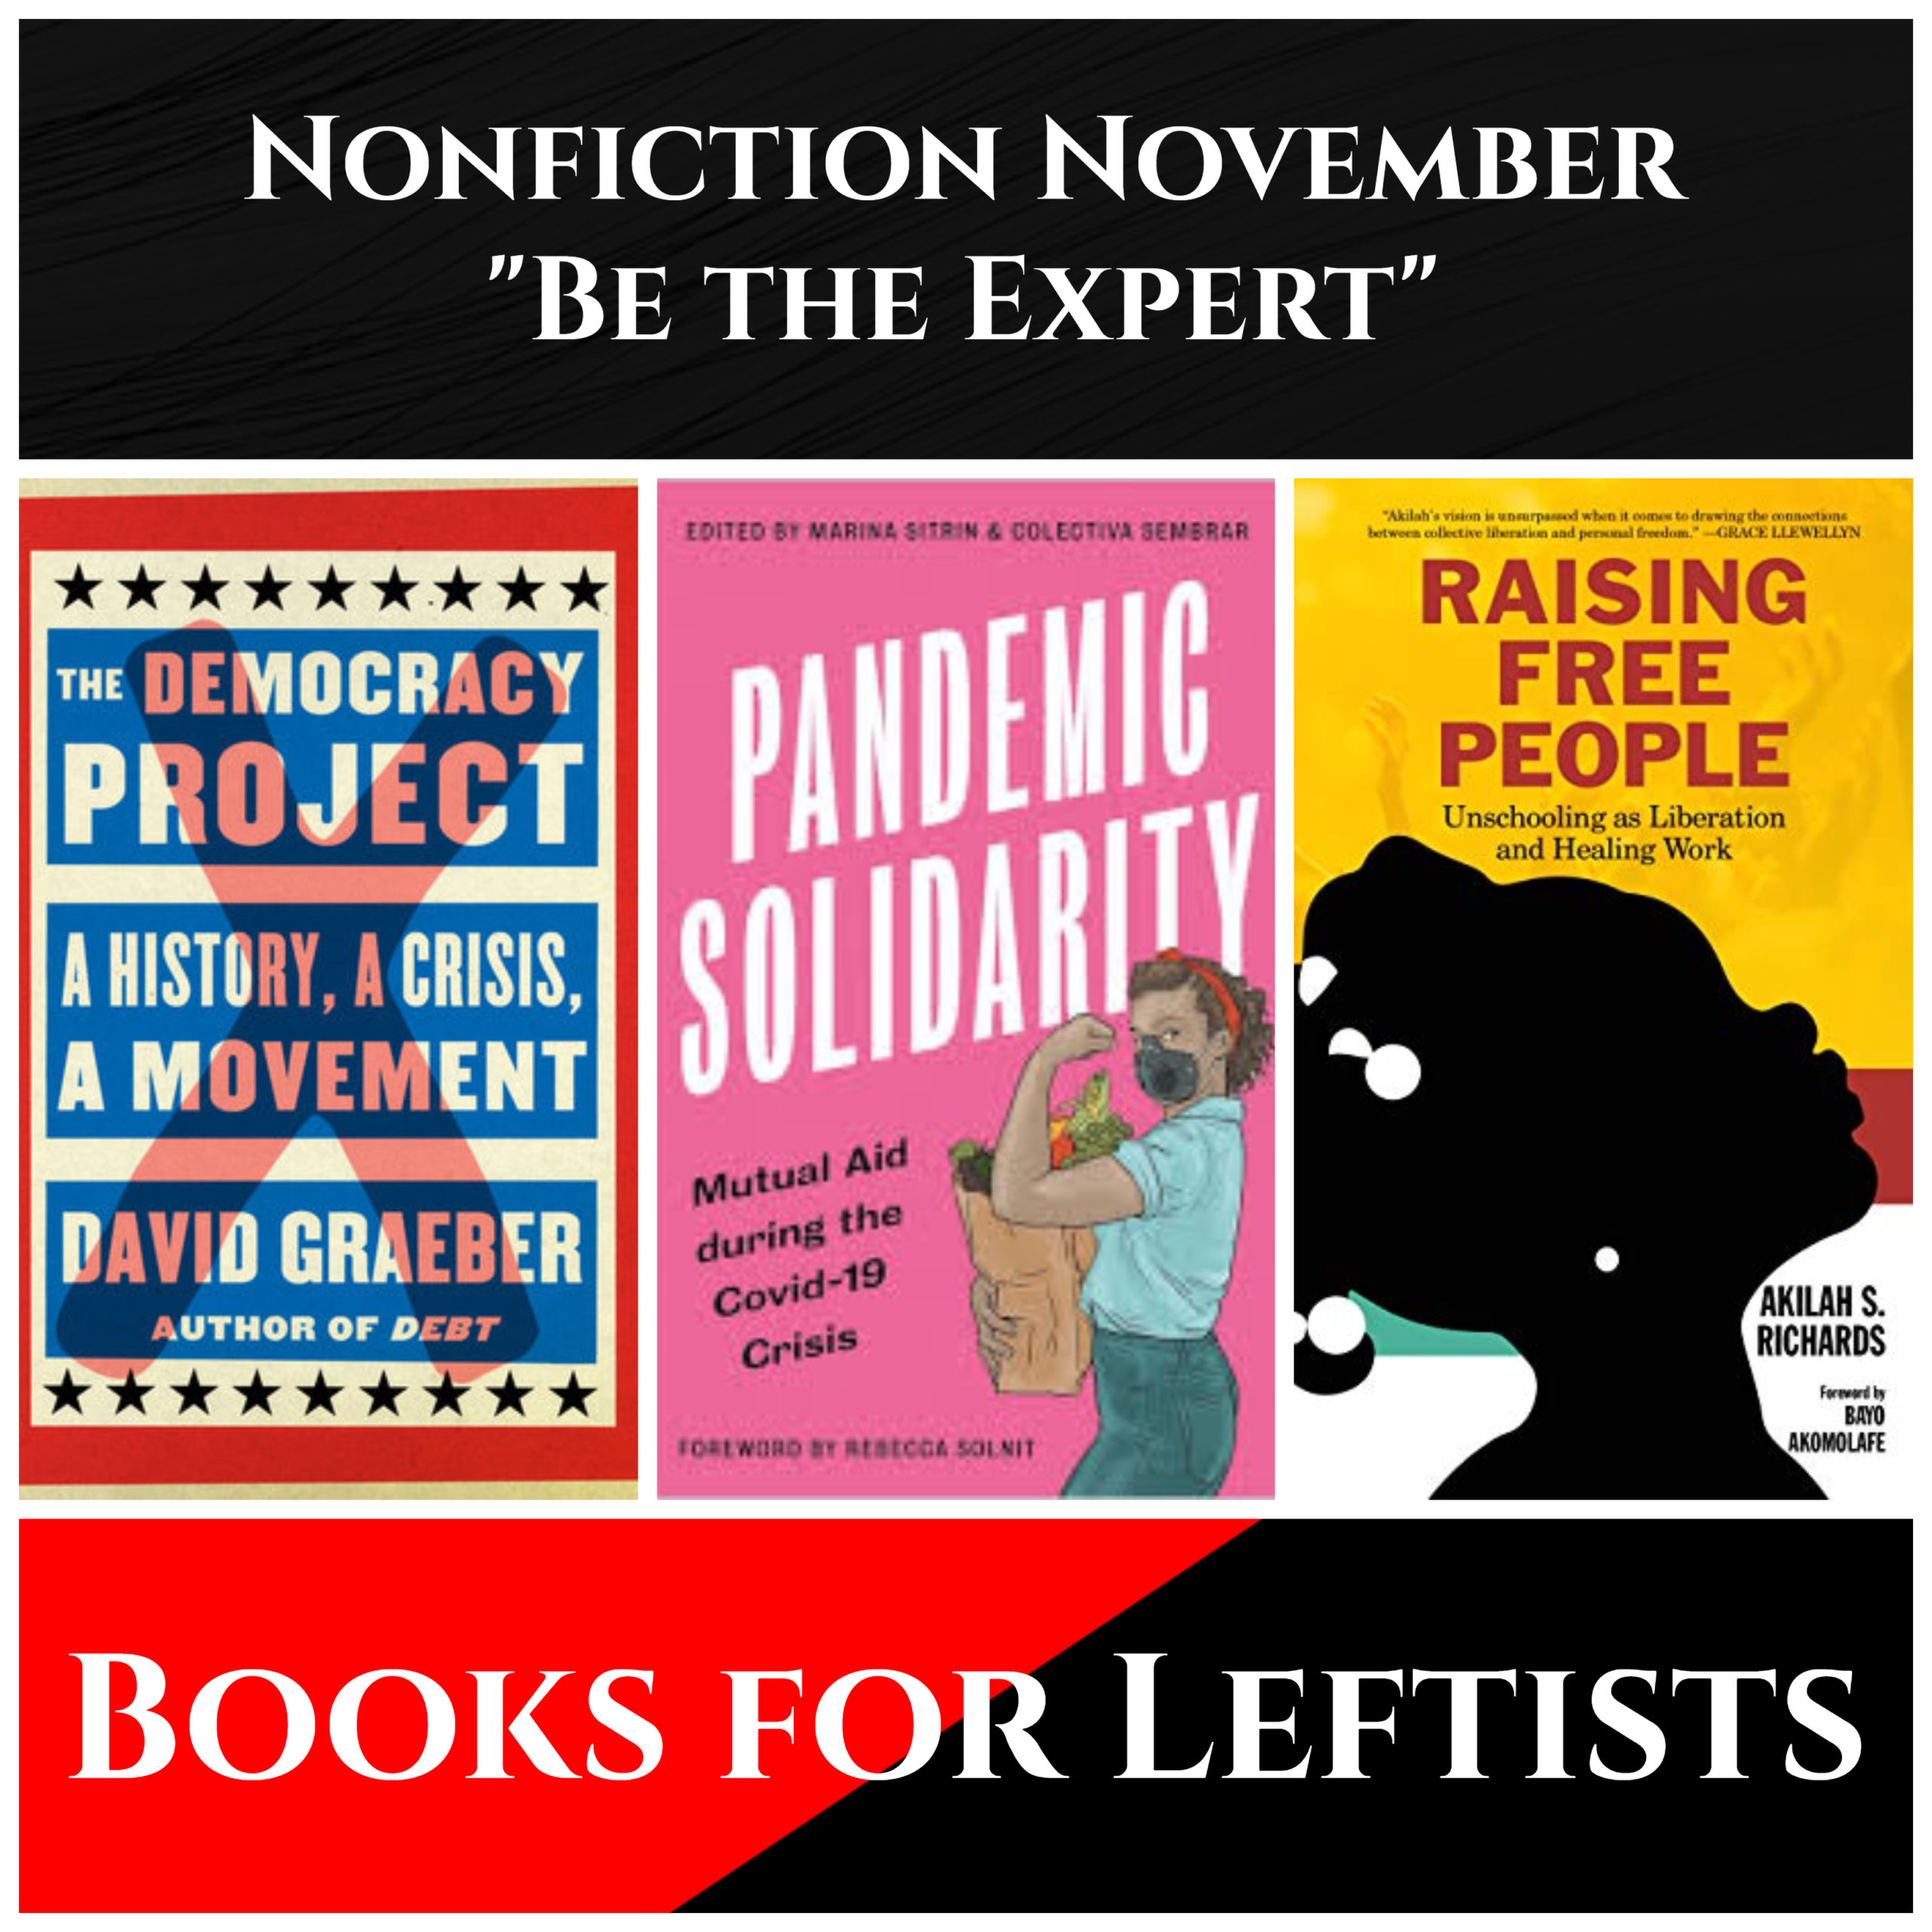 Nonfiction November: Books for Leftists